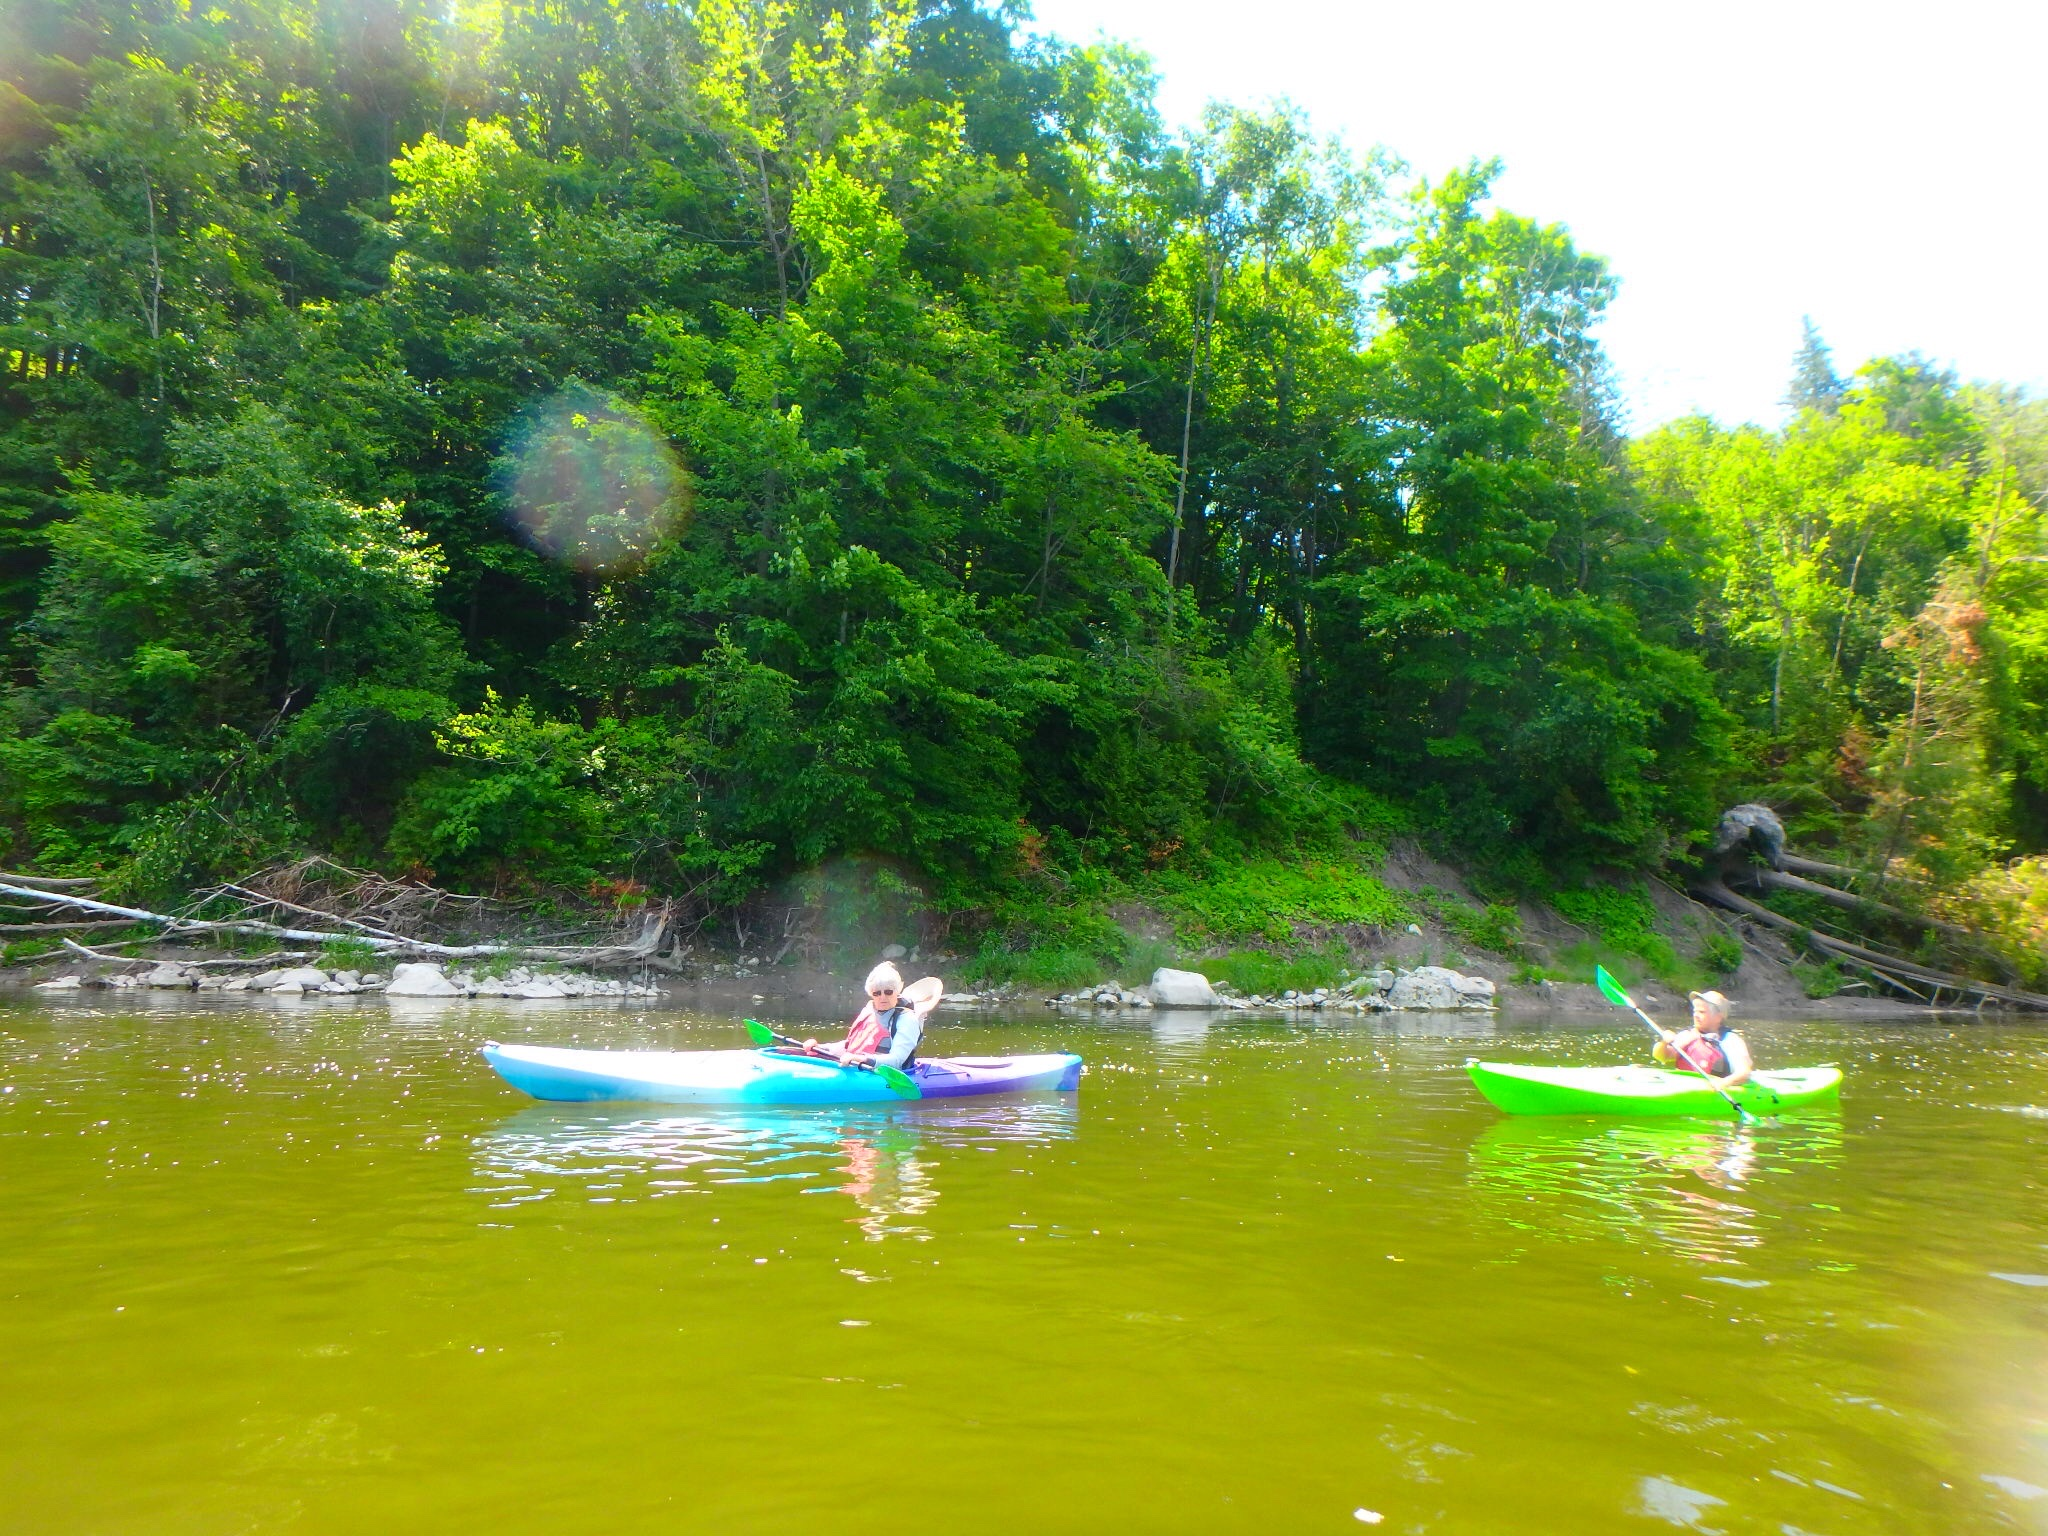 Kayaking Yoga Meditation - Solstice - Jun 21 2018-29